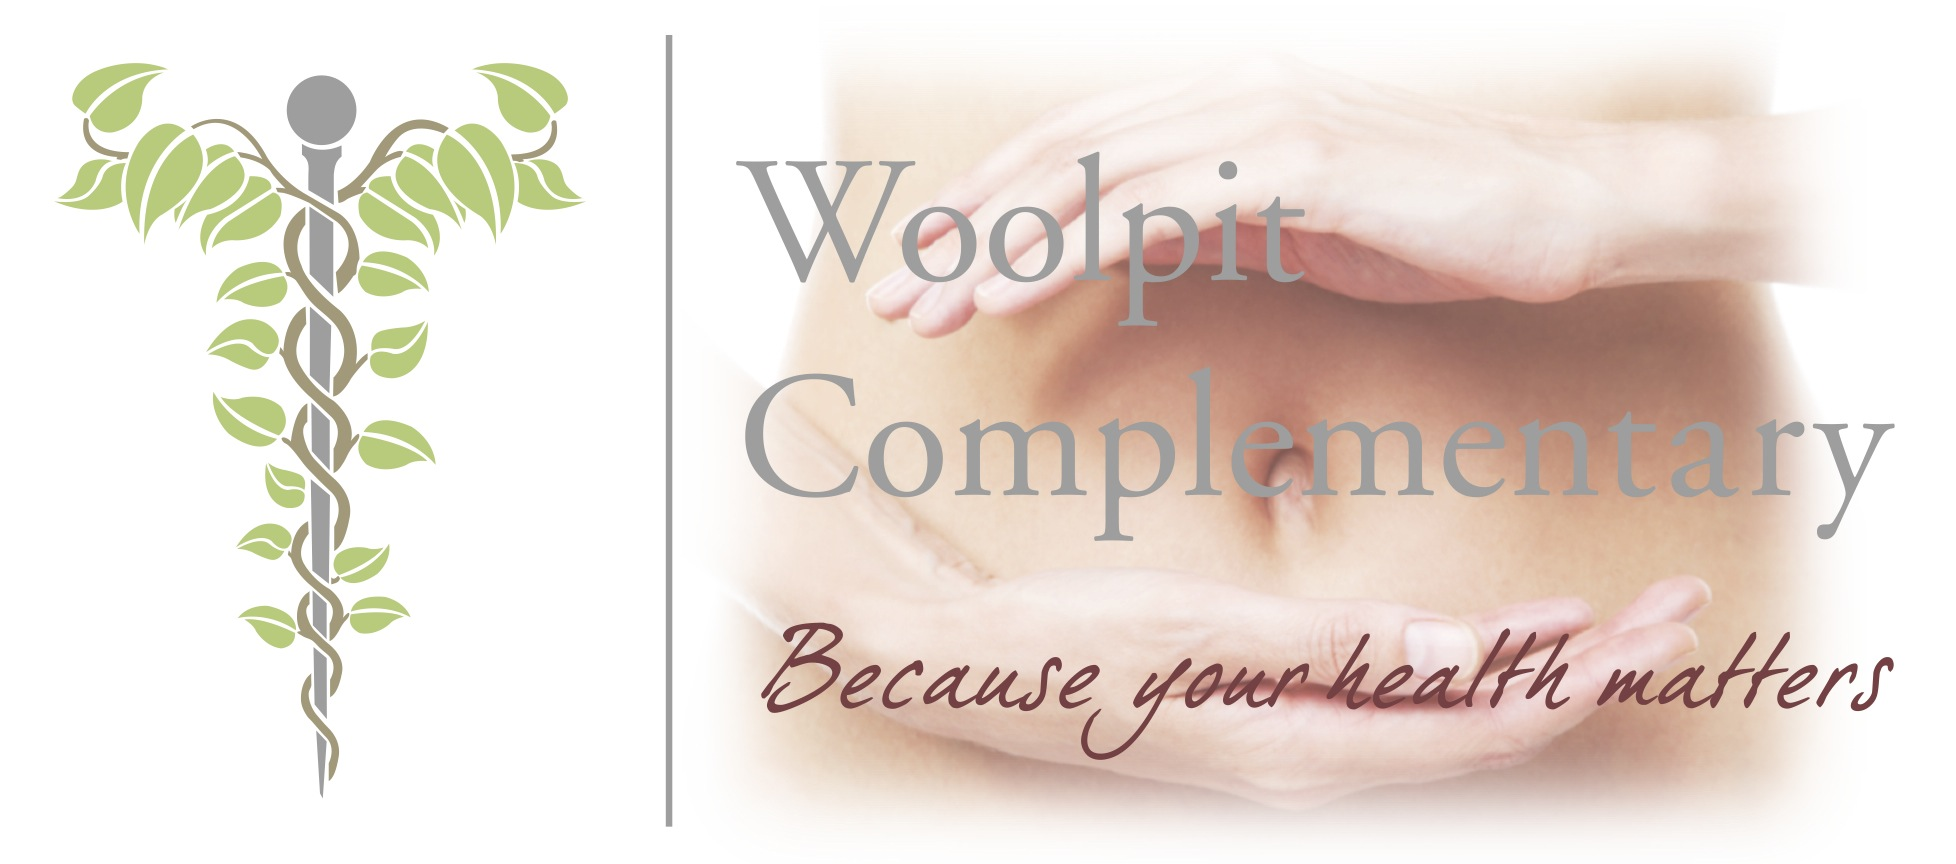 IBS Treatment, Woolpit Complementary, Bury St Edmunds